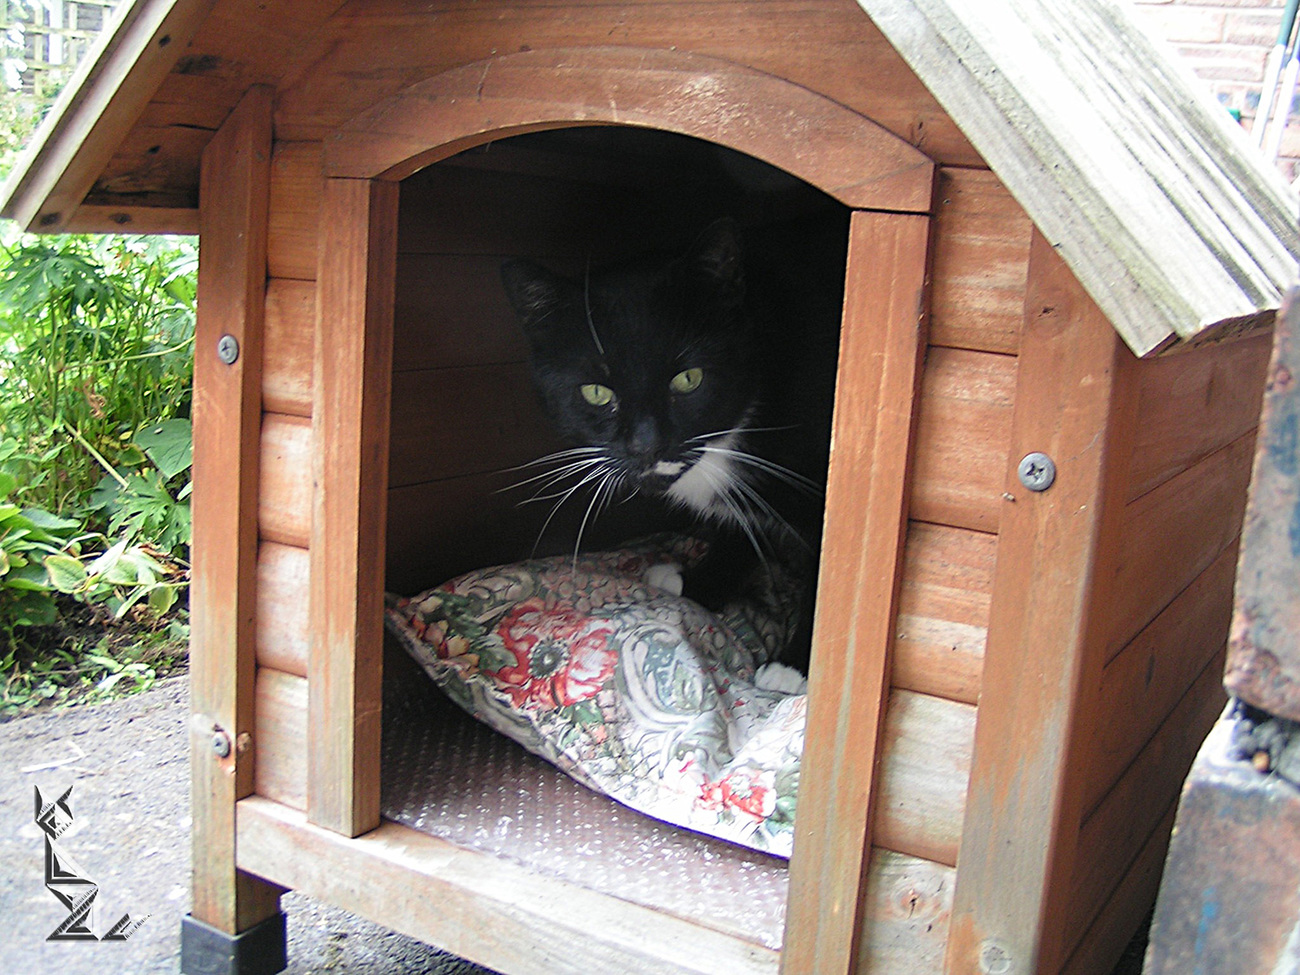 Checking out the extra accomodation ...